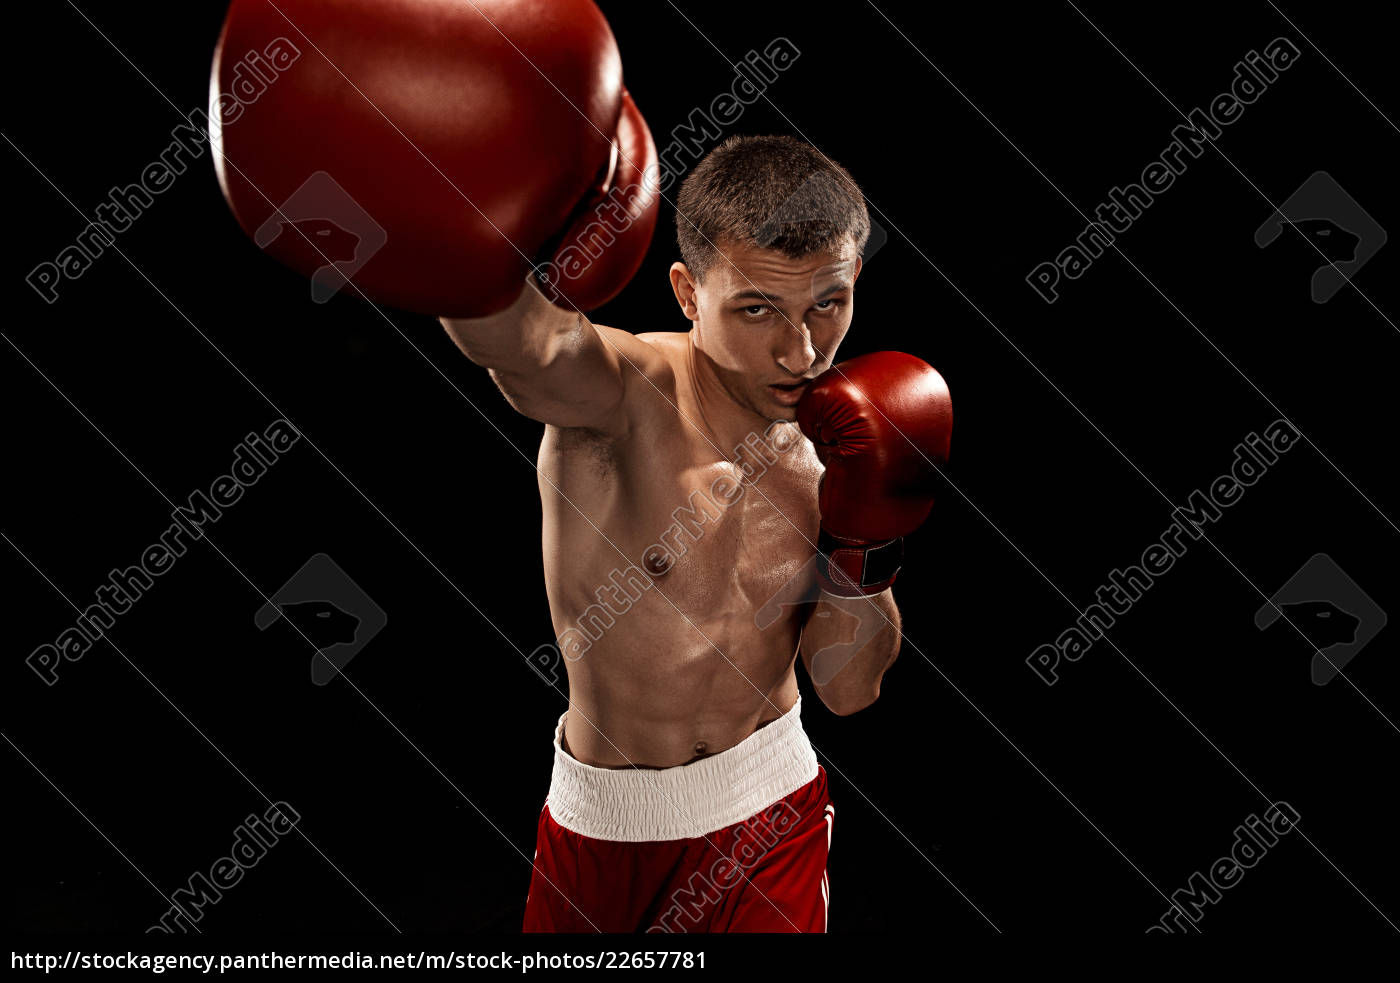 male, boxer, boxing, with, dramatic, edgy - 22657781